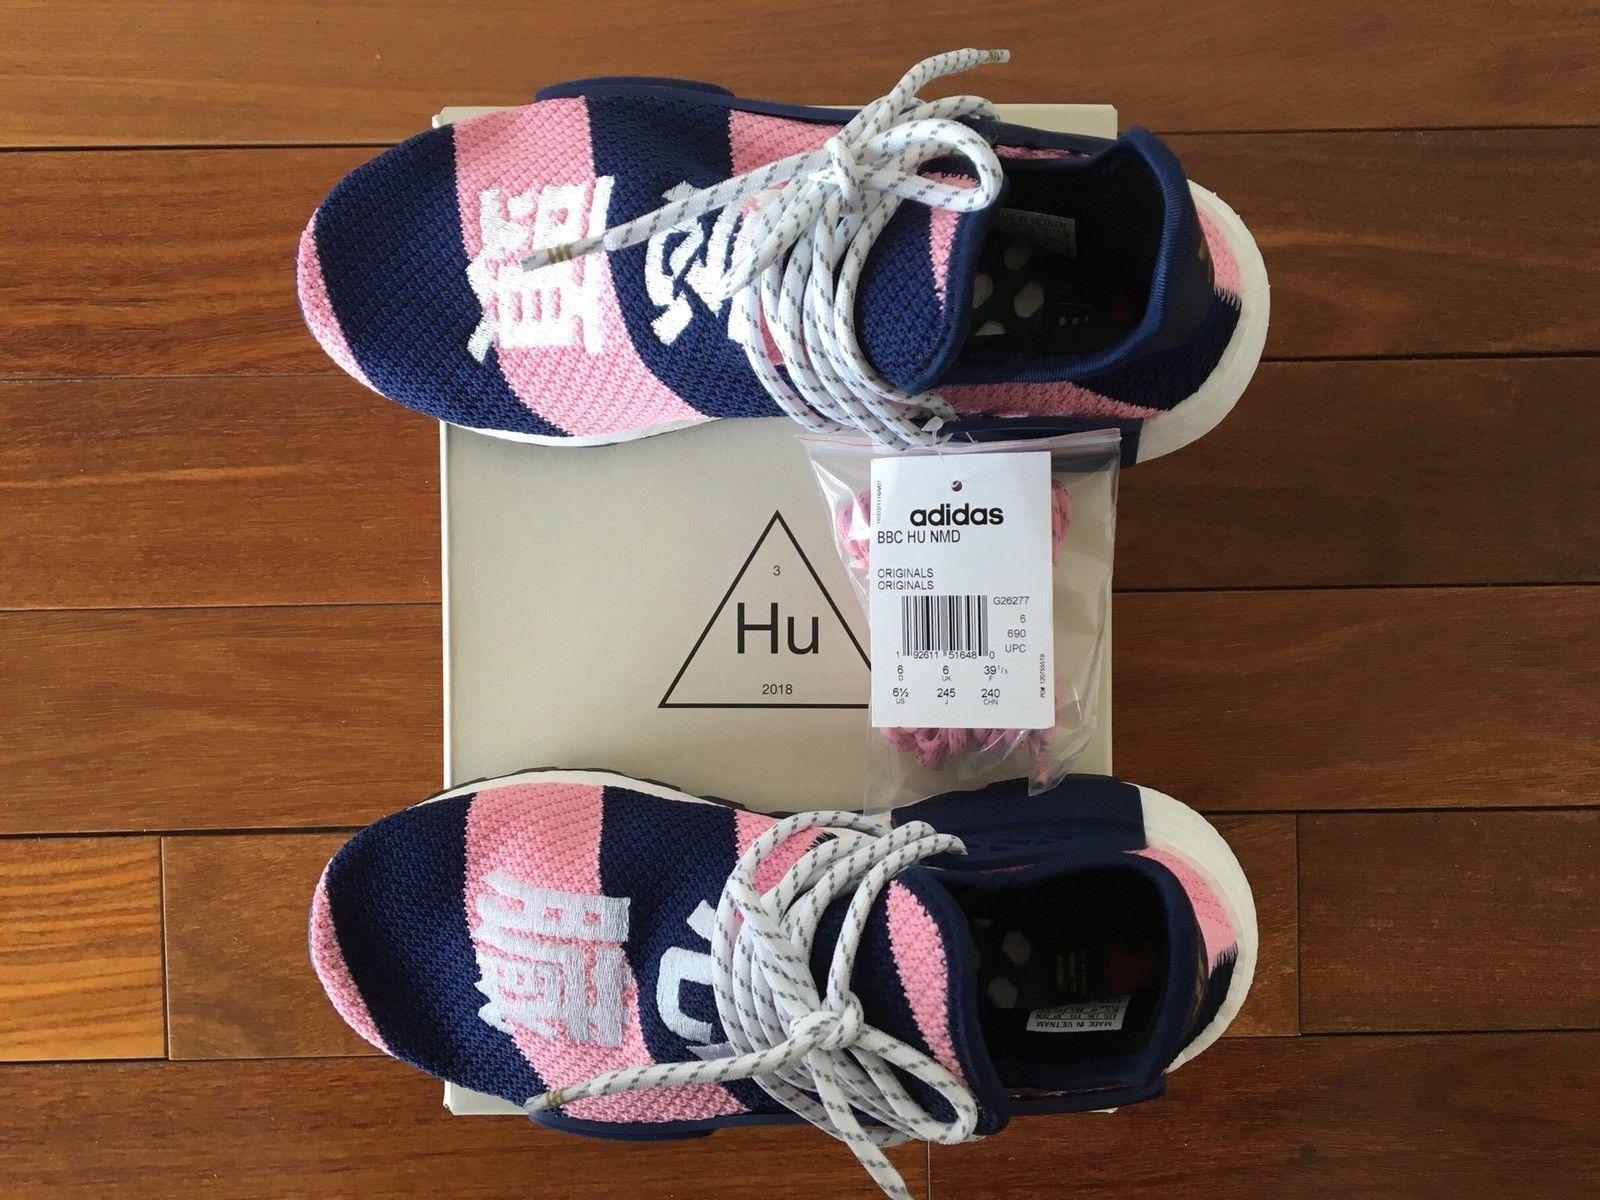 2961092ab3863 ... Billionaire Boys Club x Adidas Nmd Hu Pharrell 8-13 BBC Human Race  discount shoe ...